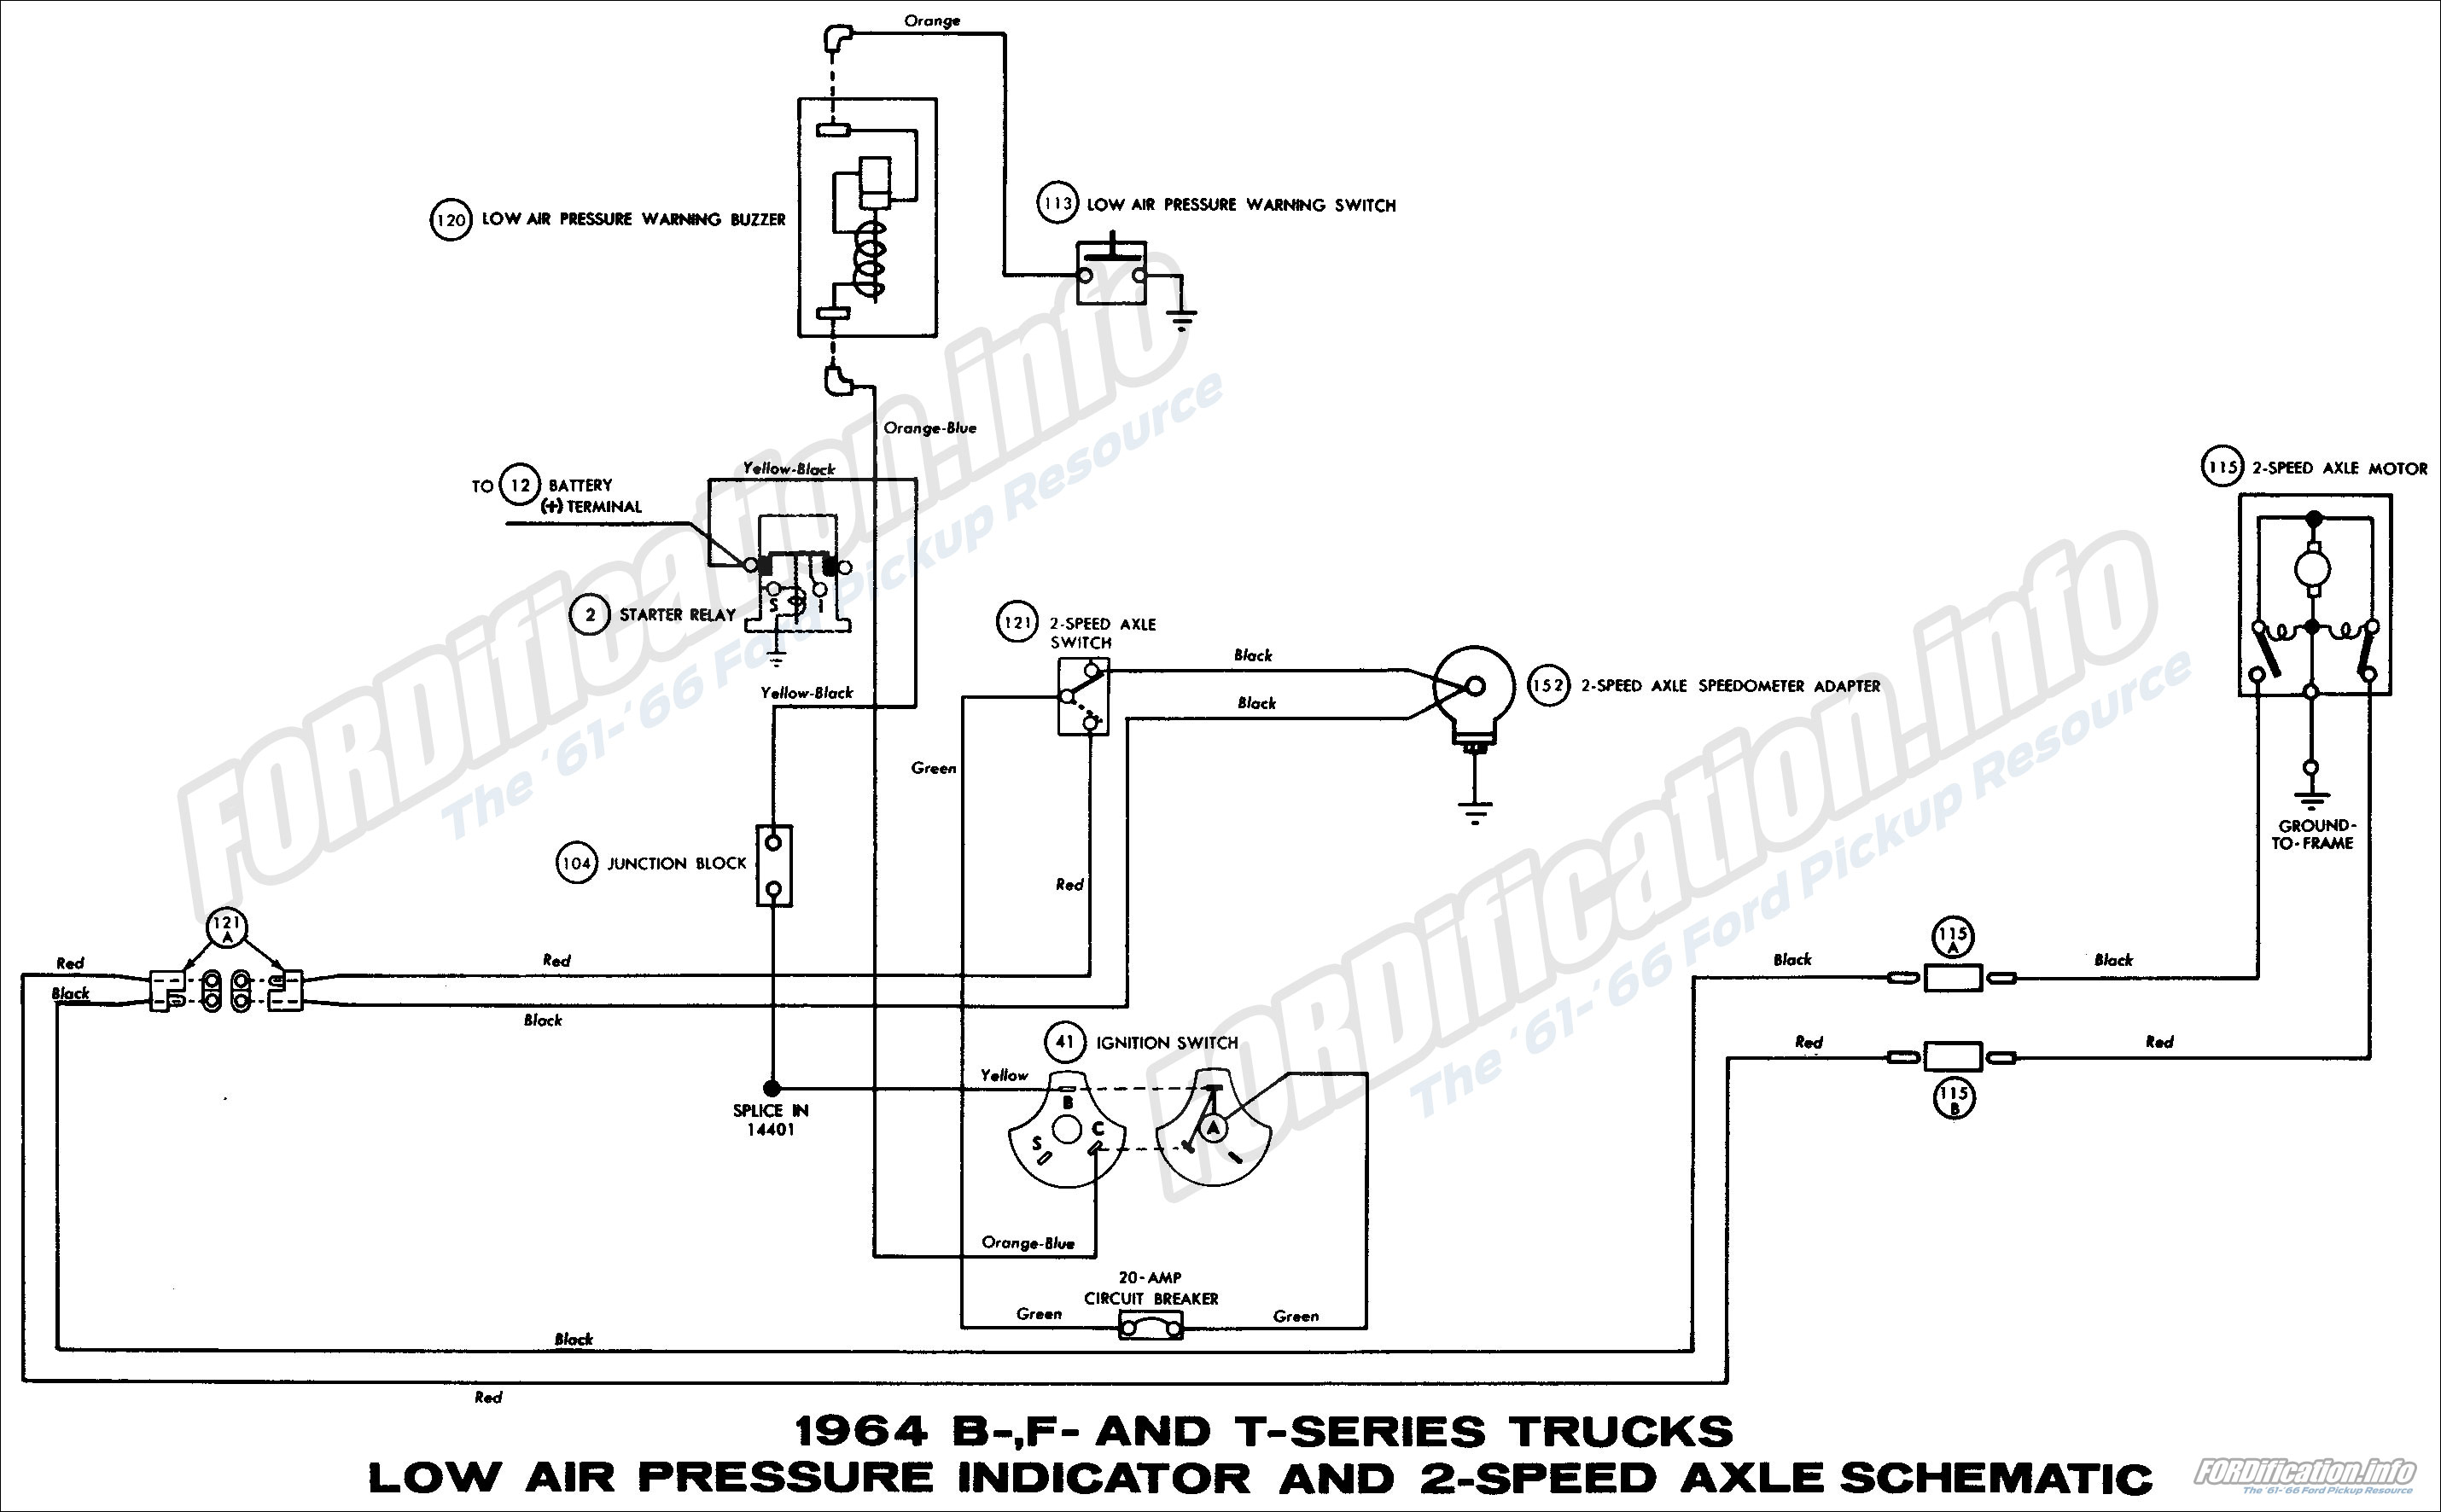 1964_17 1964 ford truck wiring diagrams fordification info the '61 '66 Universal Wiper Motor Wiring Diagram at bayanpartner.co